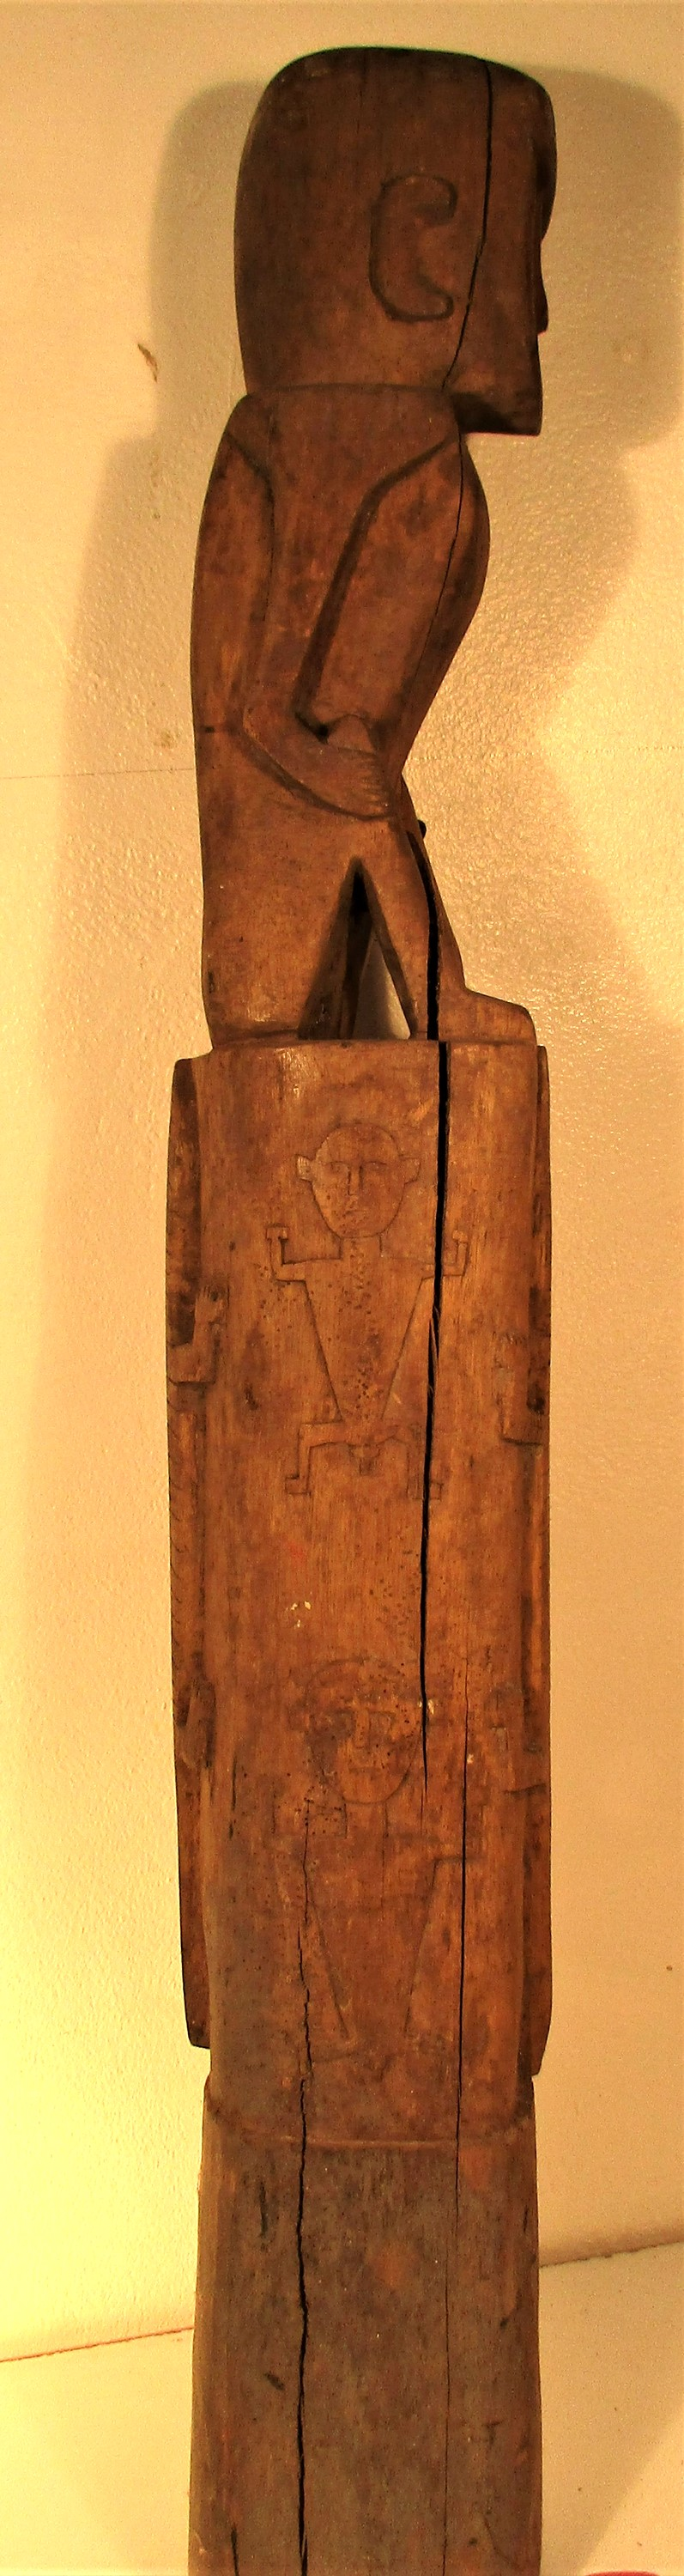 A house post sculpture from Sumba. It is part of the ritual of death that a sculpture of the - Image 4 of 4